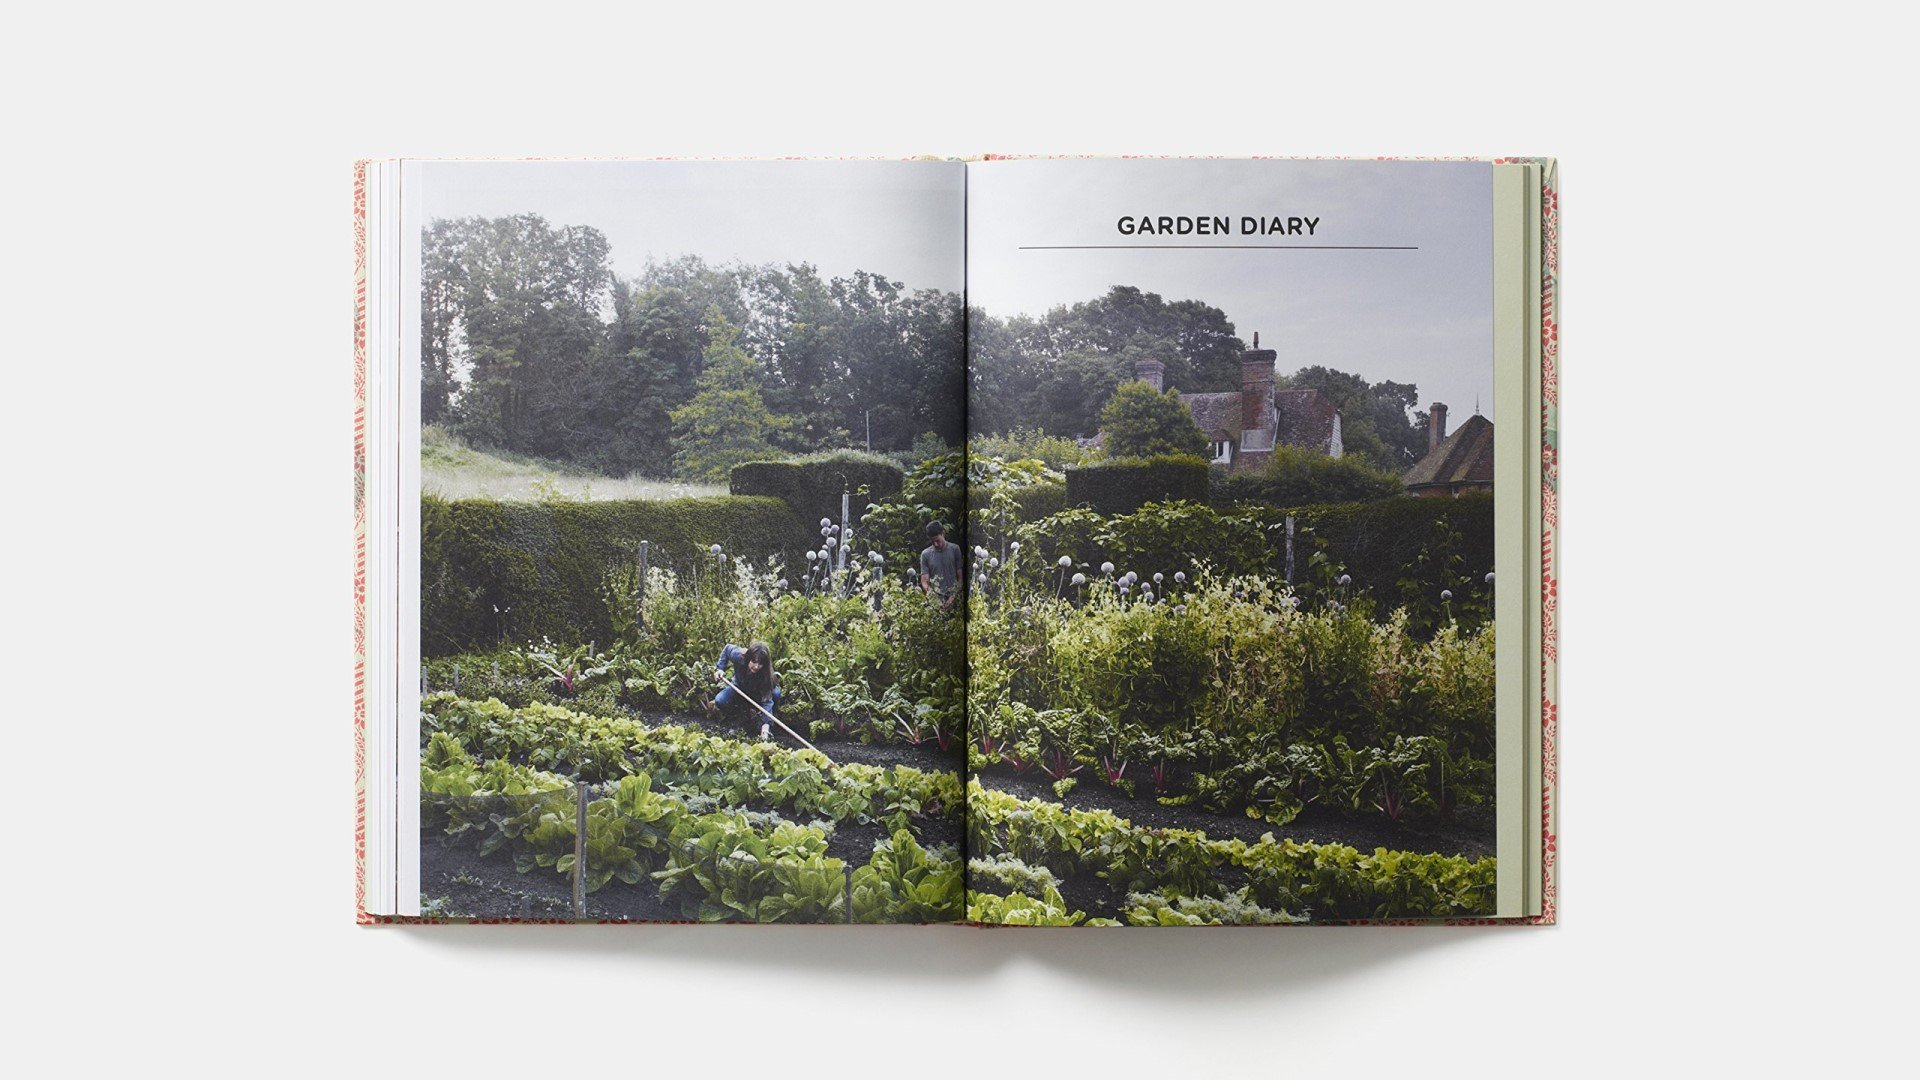 The Great Dixter Cookbook: Recipes from an English Garden. Image Gallery 05